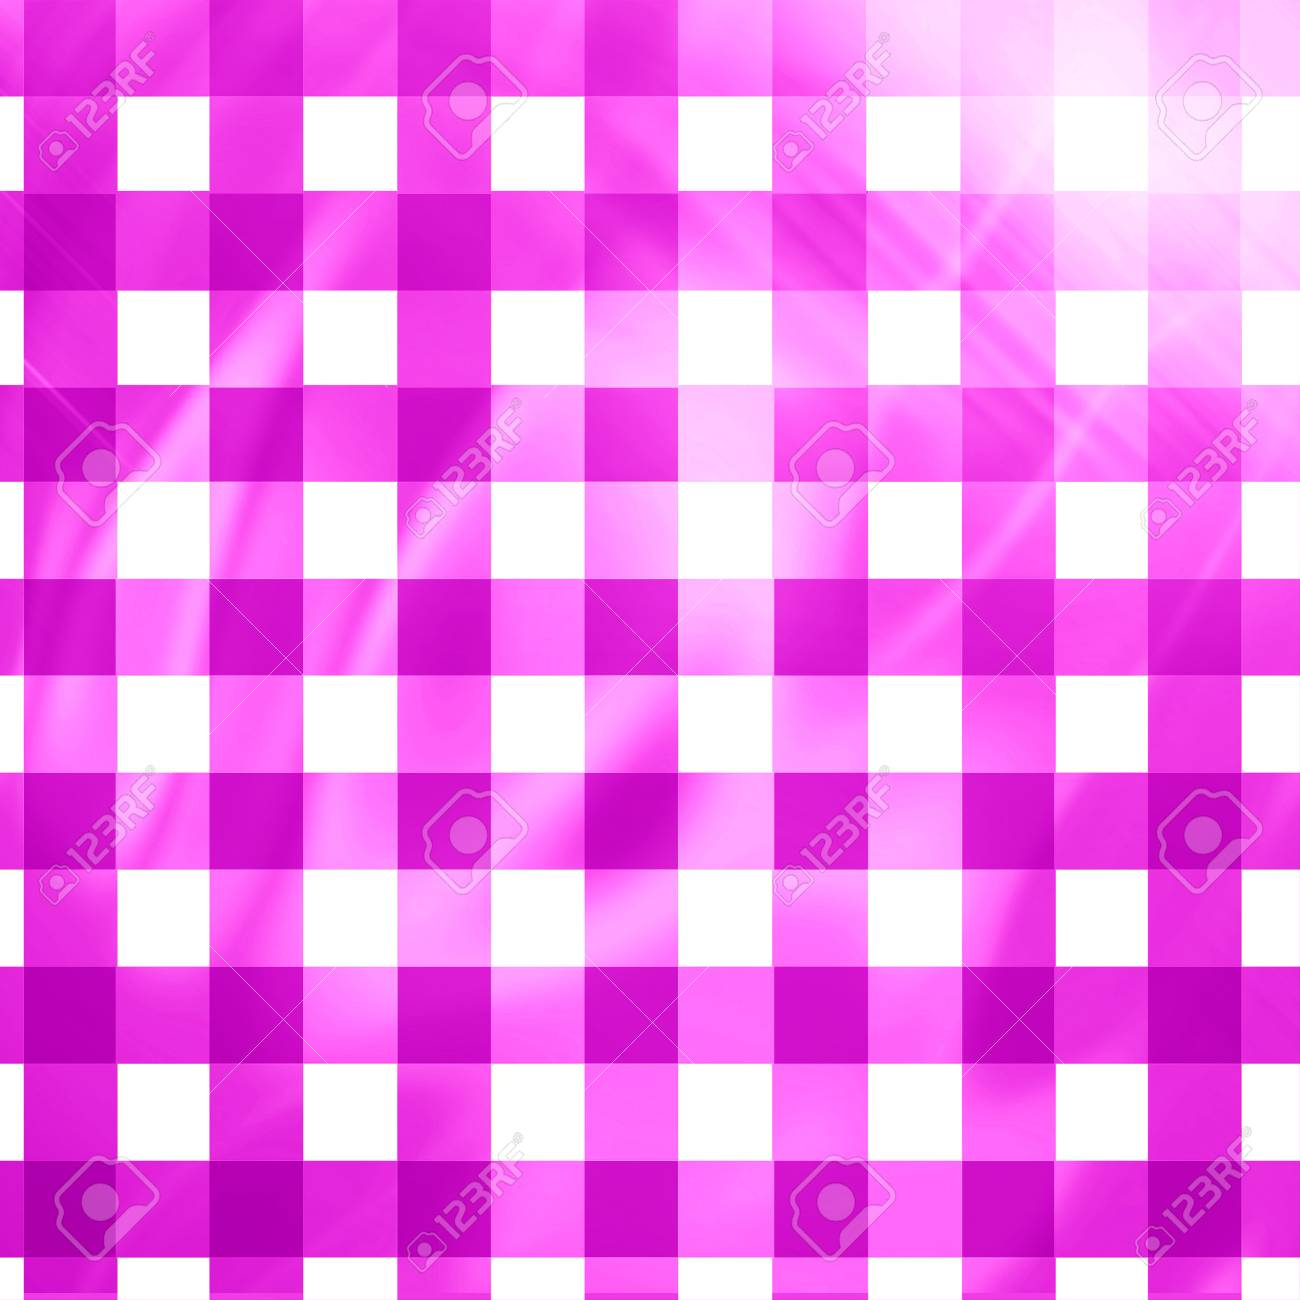 pink picnic cloth with some squares in it Stock Photo - 22619668